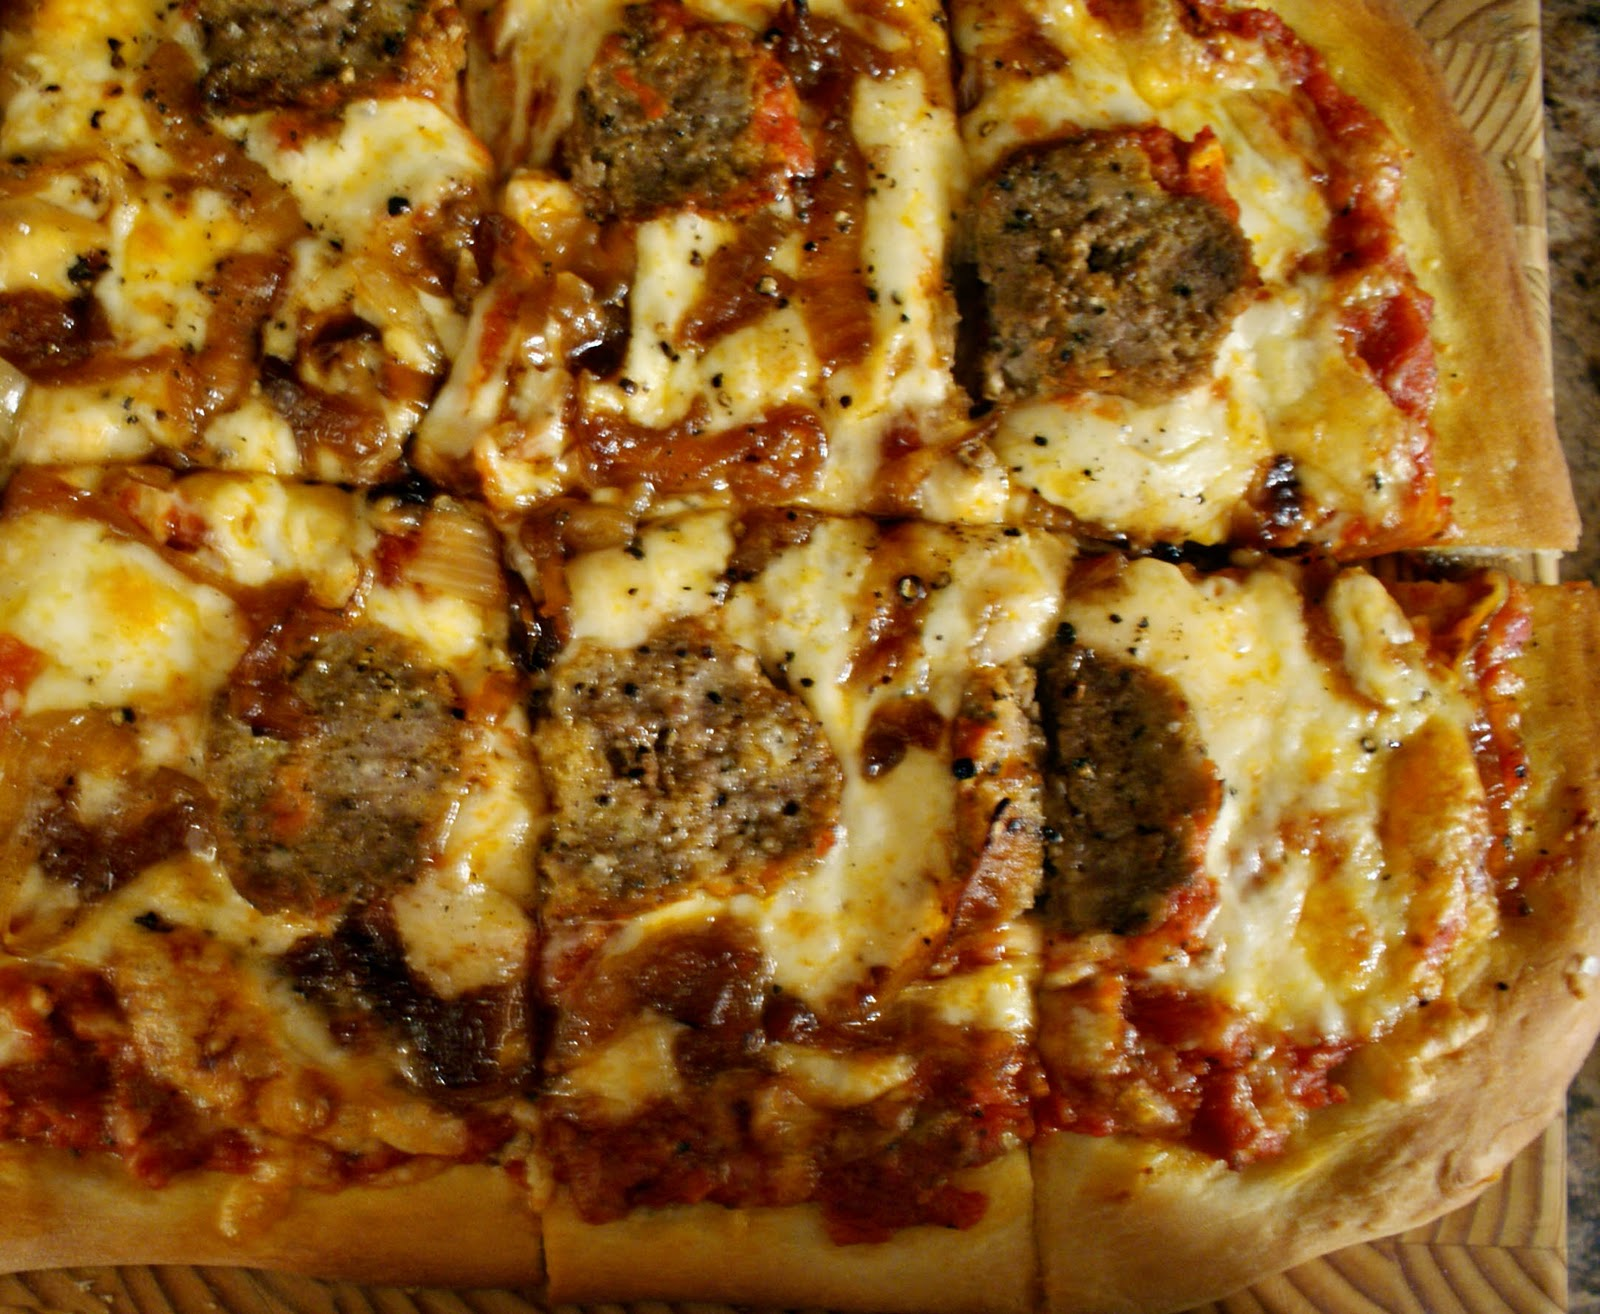 Piccante Dolce: Leftover Meatballs, make delicious pizza!